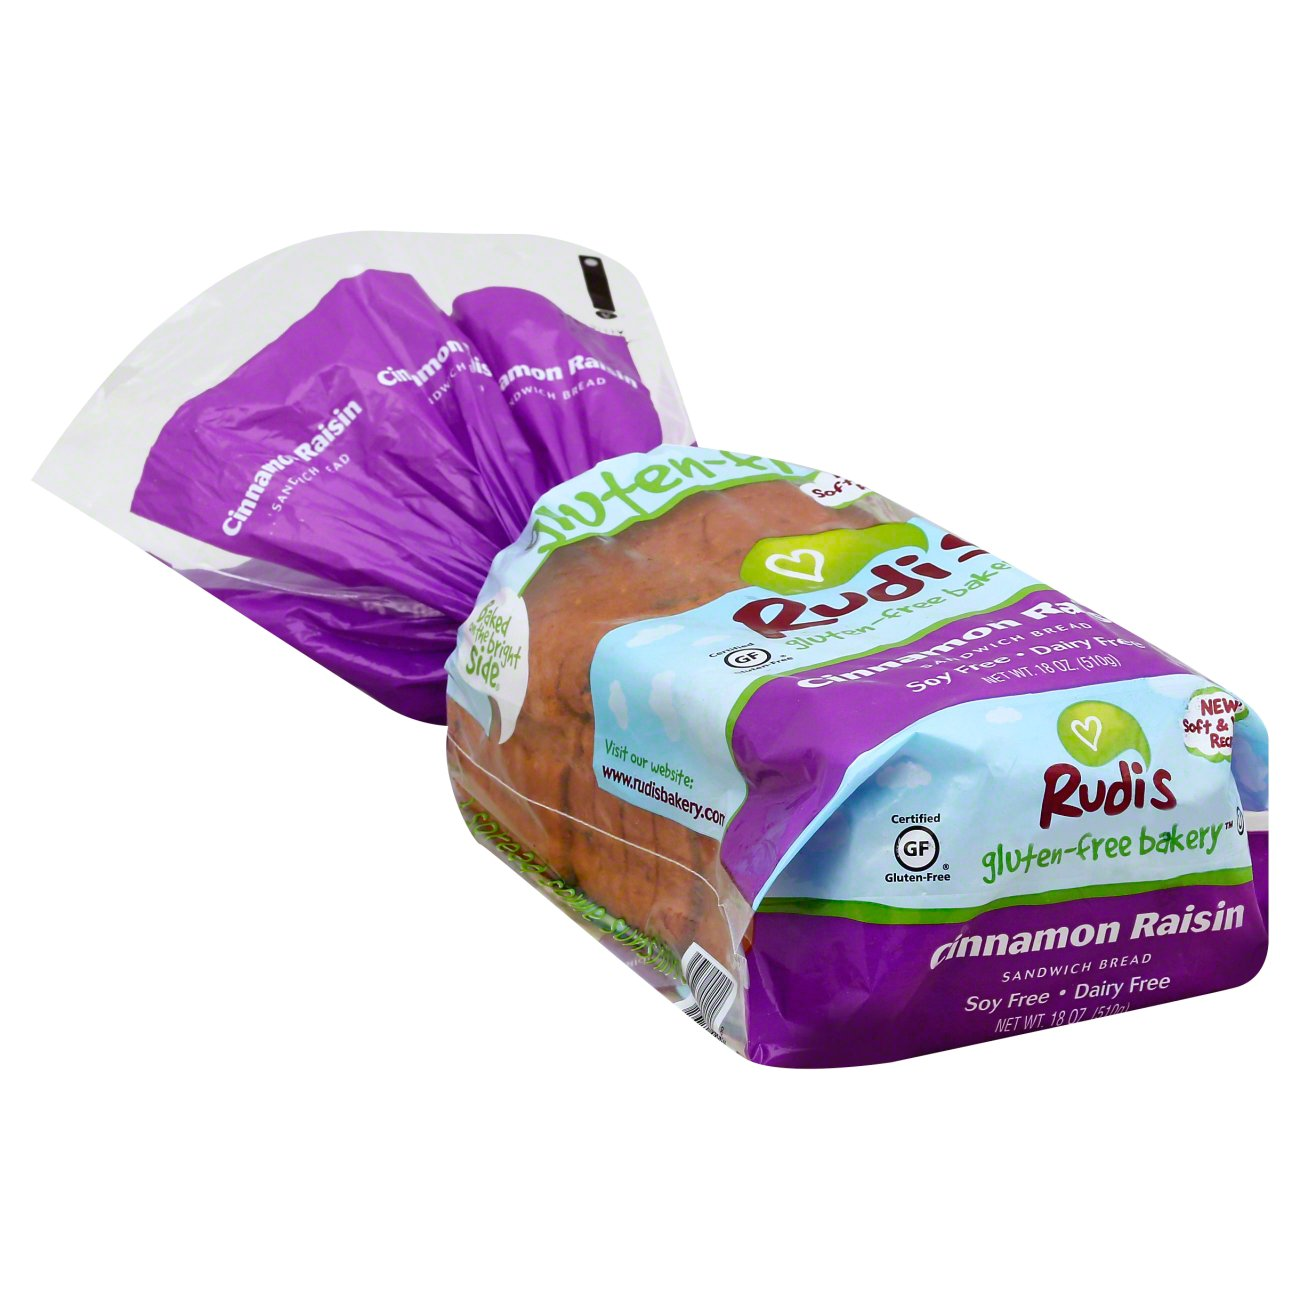 Rudi S Gluten Free Bakery Cinnamon Raisin Sandwich Bread Shop Bread At H E B